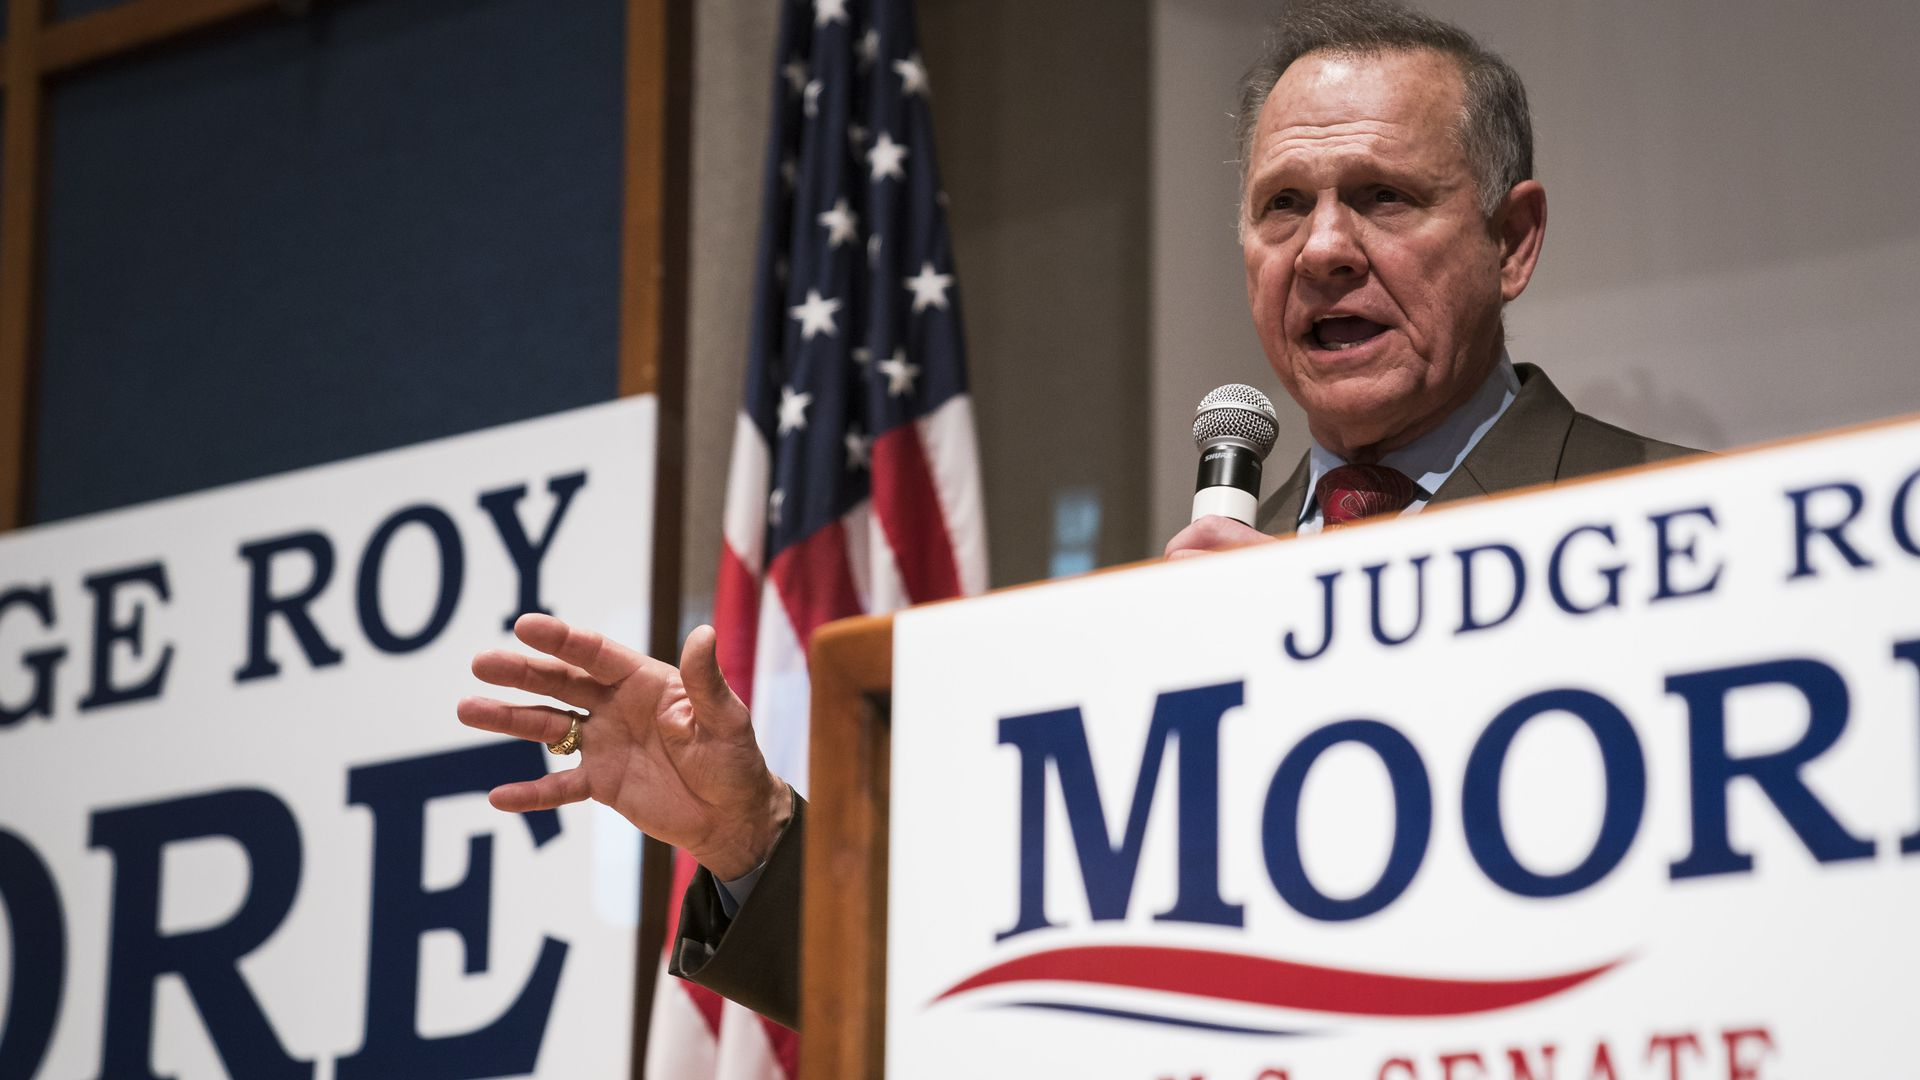 Roy Moore campaigning for senate